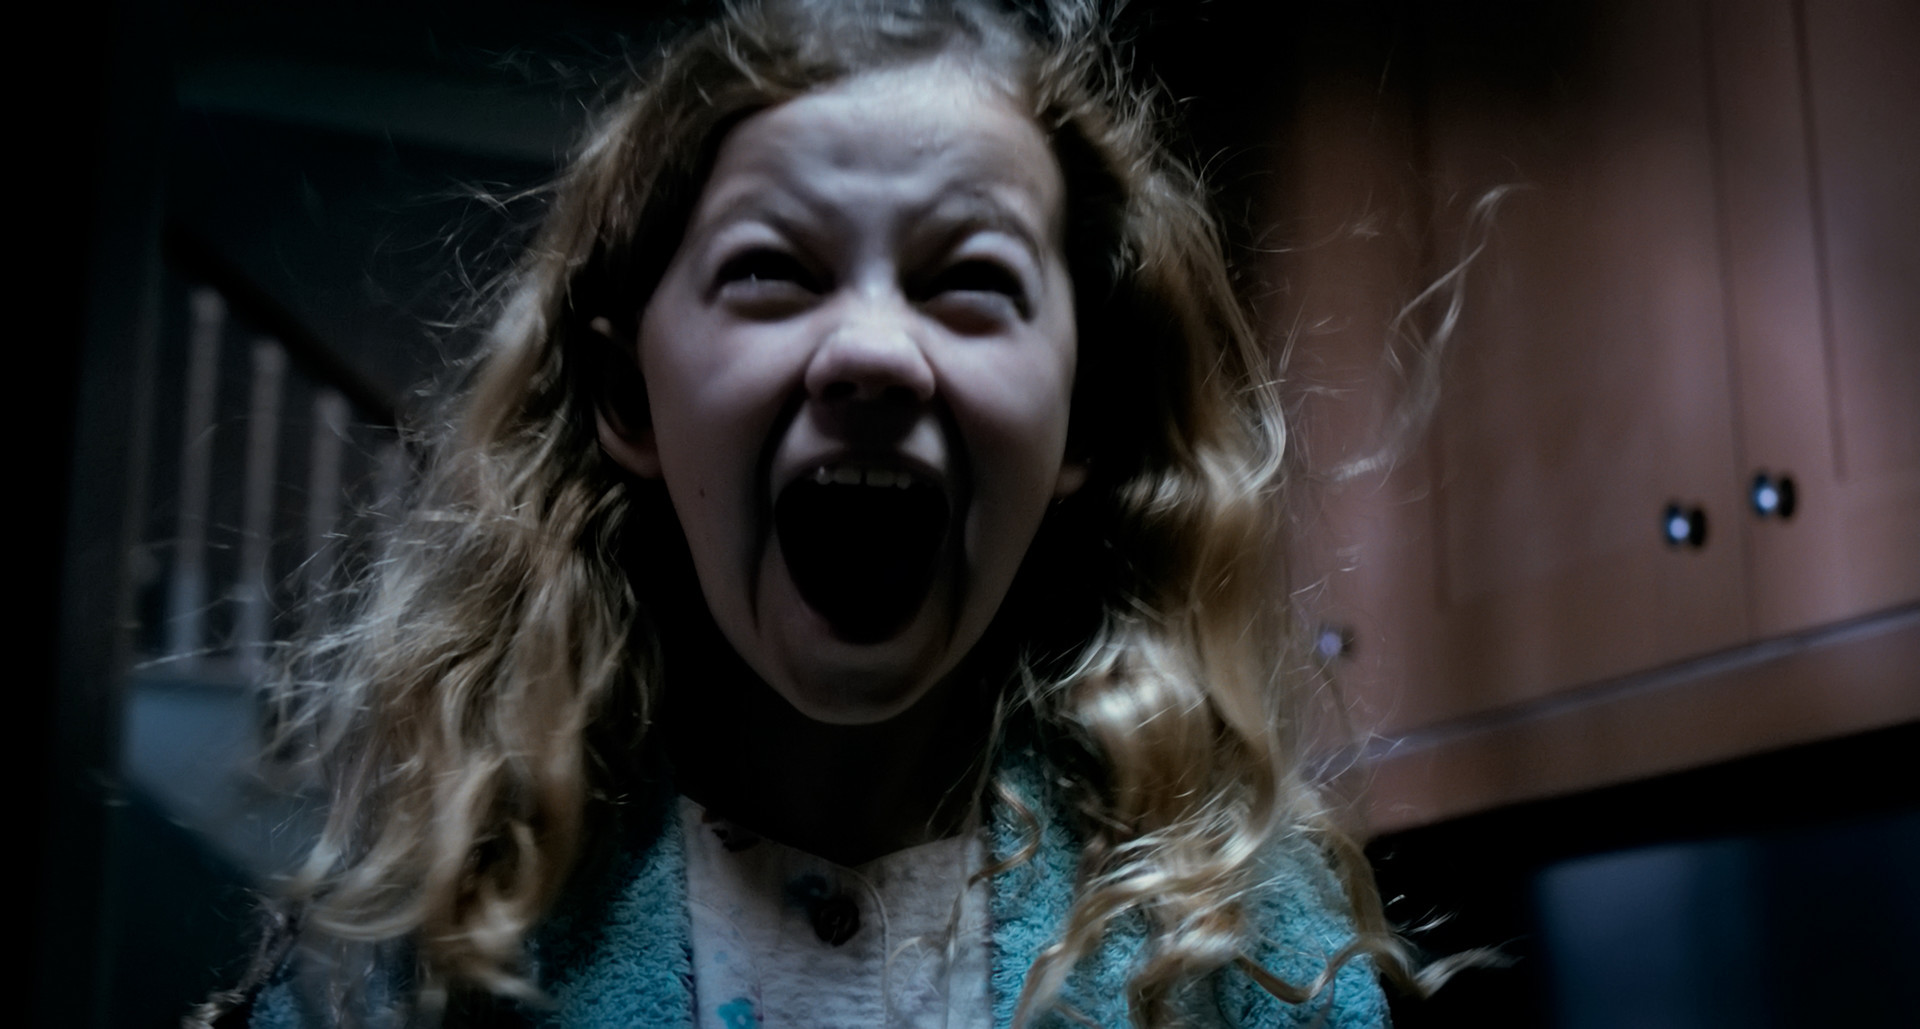 a review of the horror movies in the theaters Horror reviews  camp cold brook (2018) shriekfest review the witch files (2018)  upcoming horror movies: horror movies being released in 2018  what purports to be the creepiest film of the last 50 years hits certain theaters across the united states the weekend of fri june 8th the movie is being compared to the exorcist, wicker man.